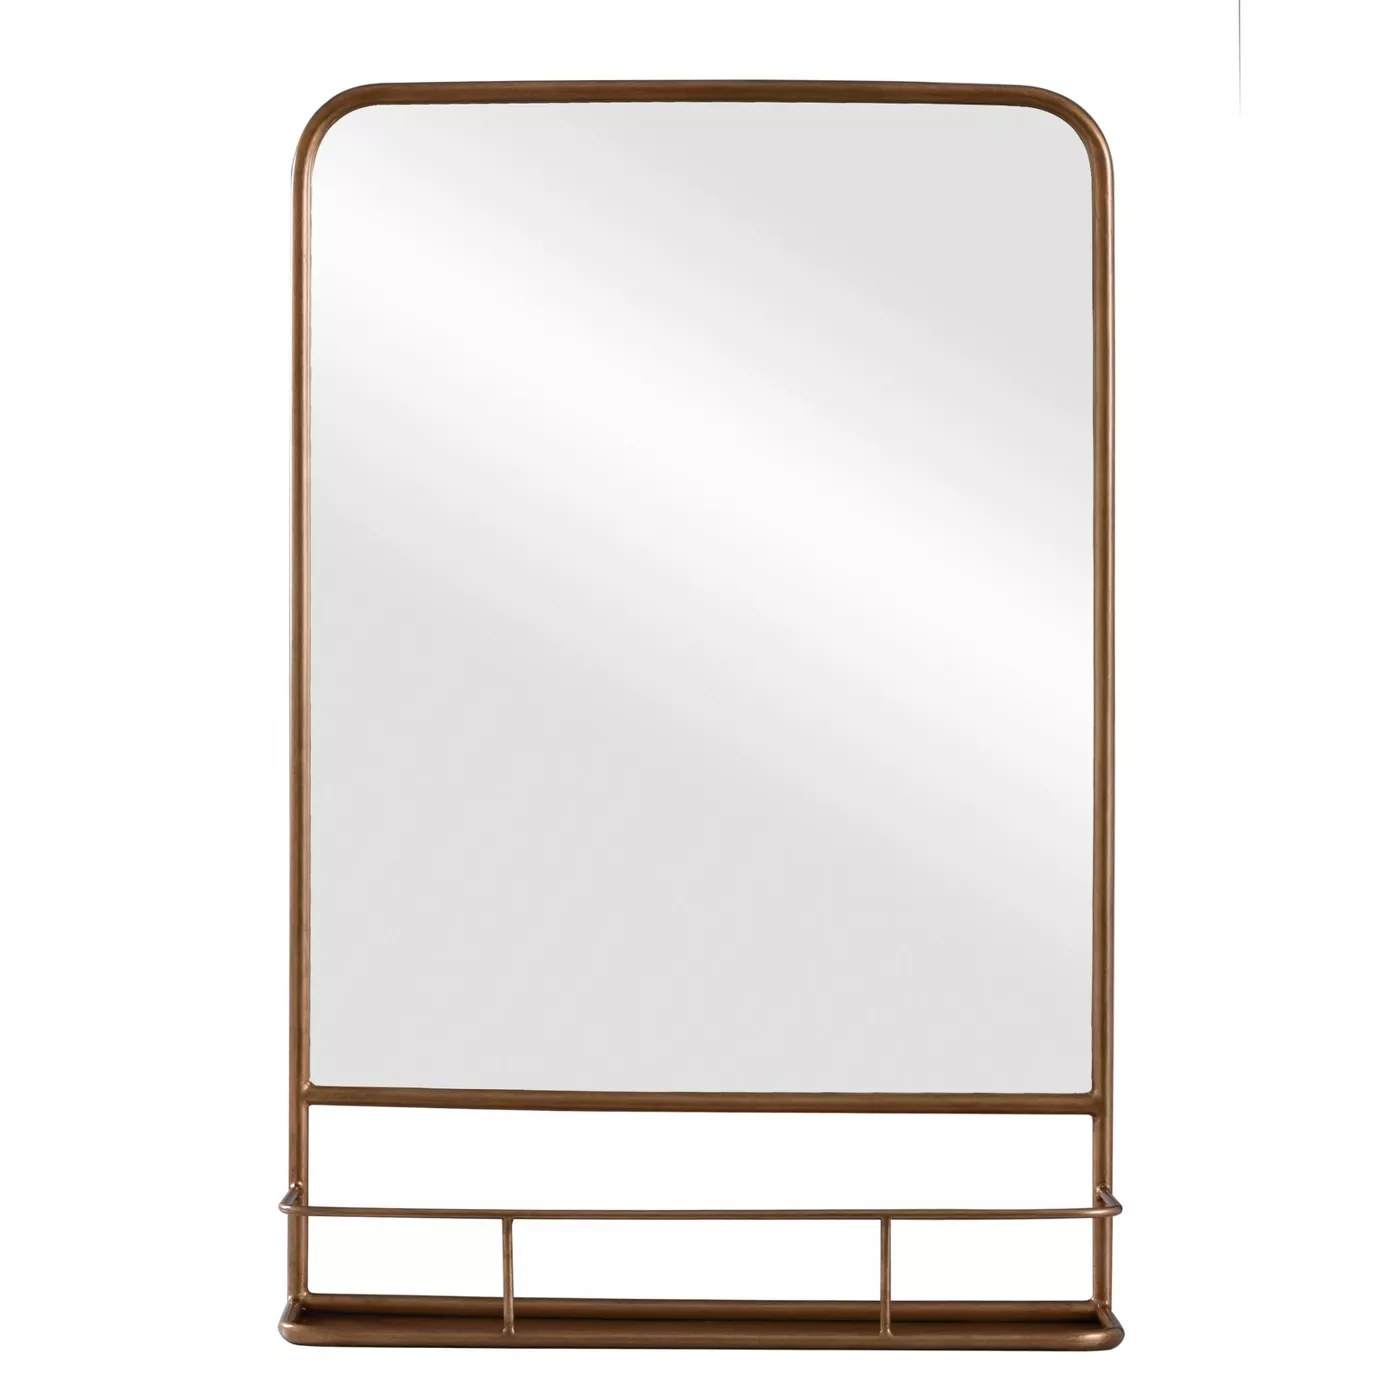 The rectangular mirror with brass trim and a built-in shelf underneath